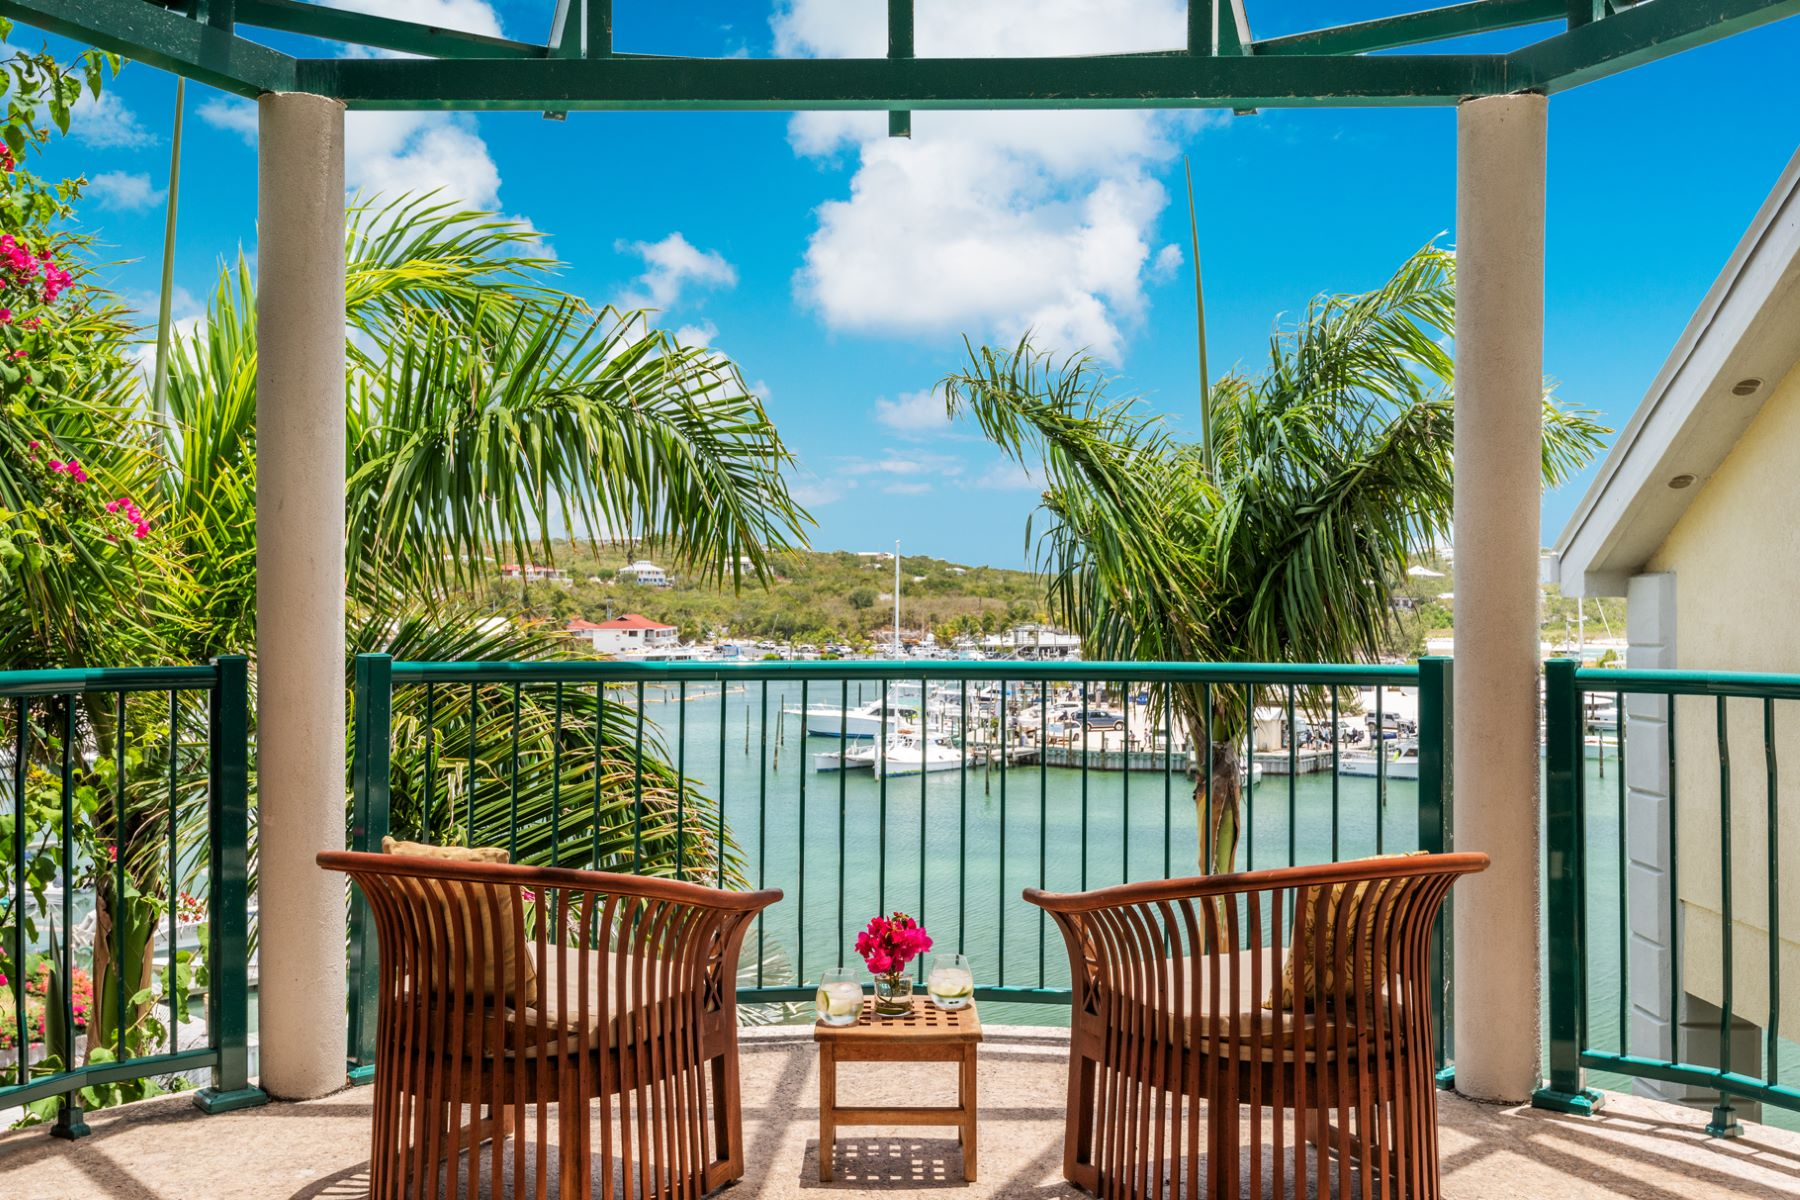 Condominio por un Venta en The Yacht Club - C14 The Yacht Club, Turtle Cove, Providenciales Islas Turcas Y Caicos